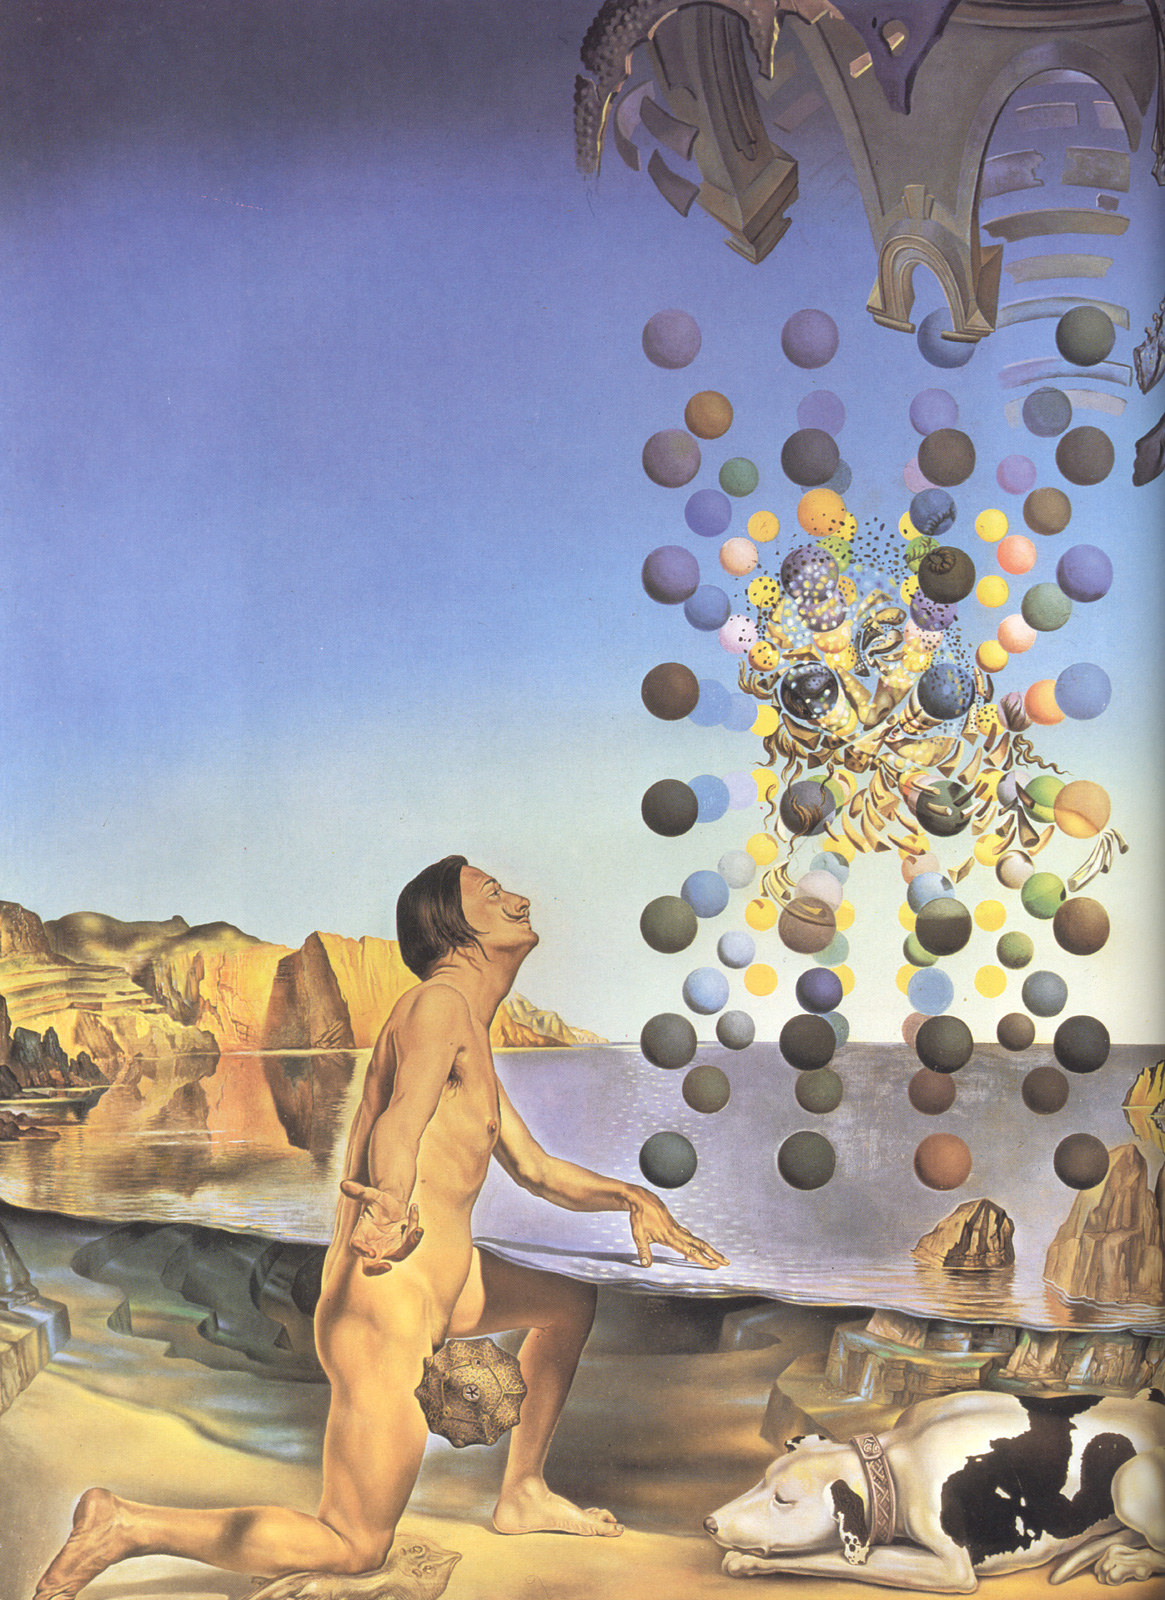 Dali Nude, in Contemplation Before the Five Regular Bodies 1954